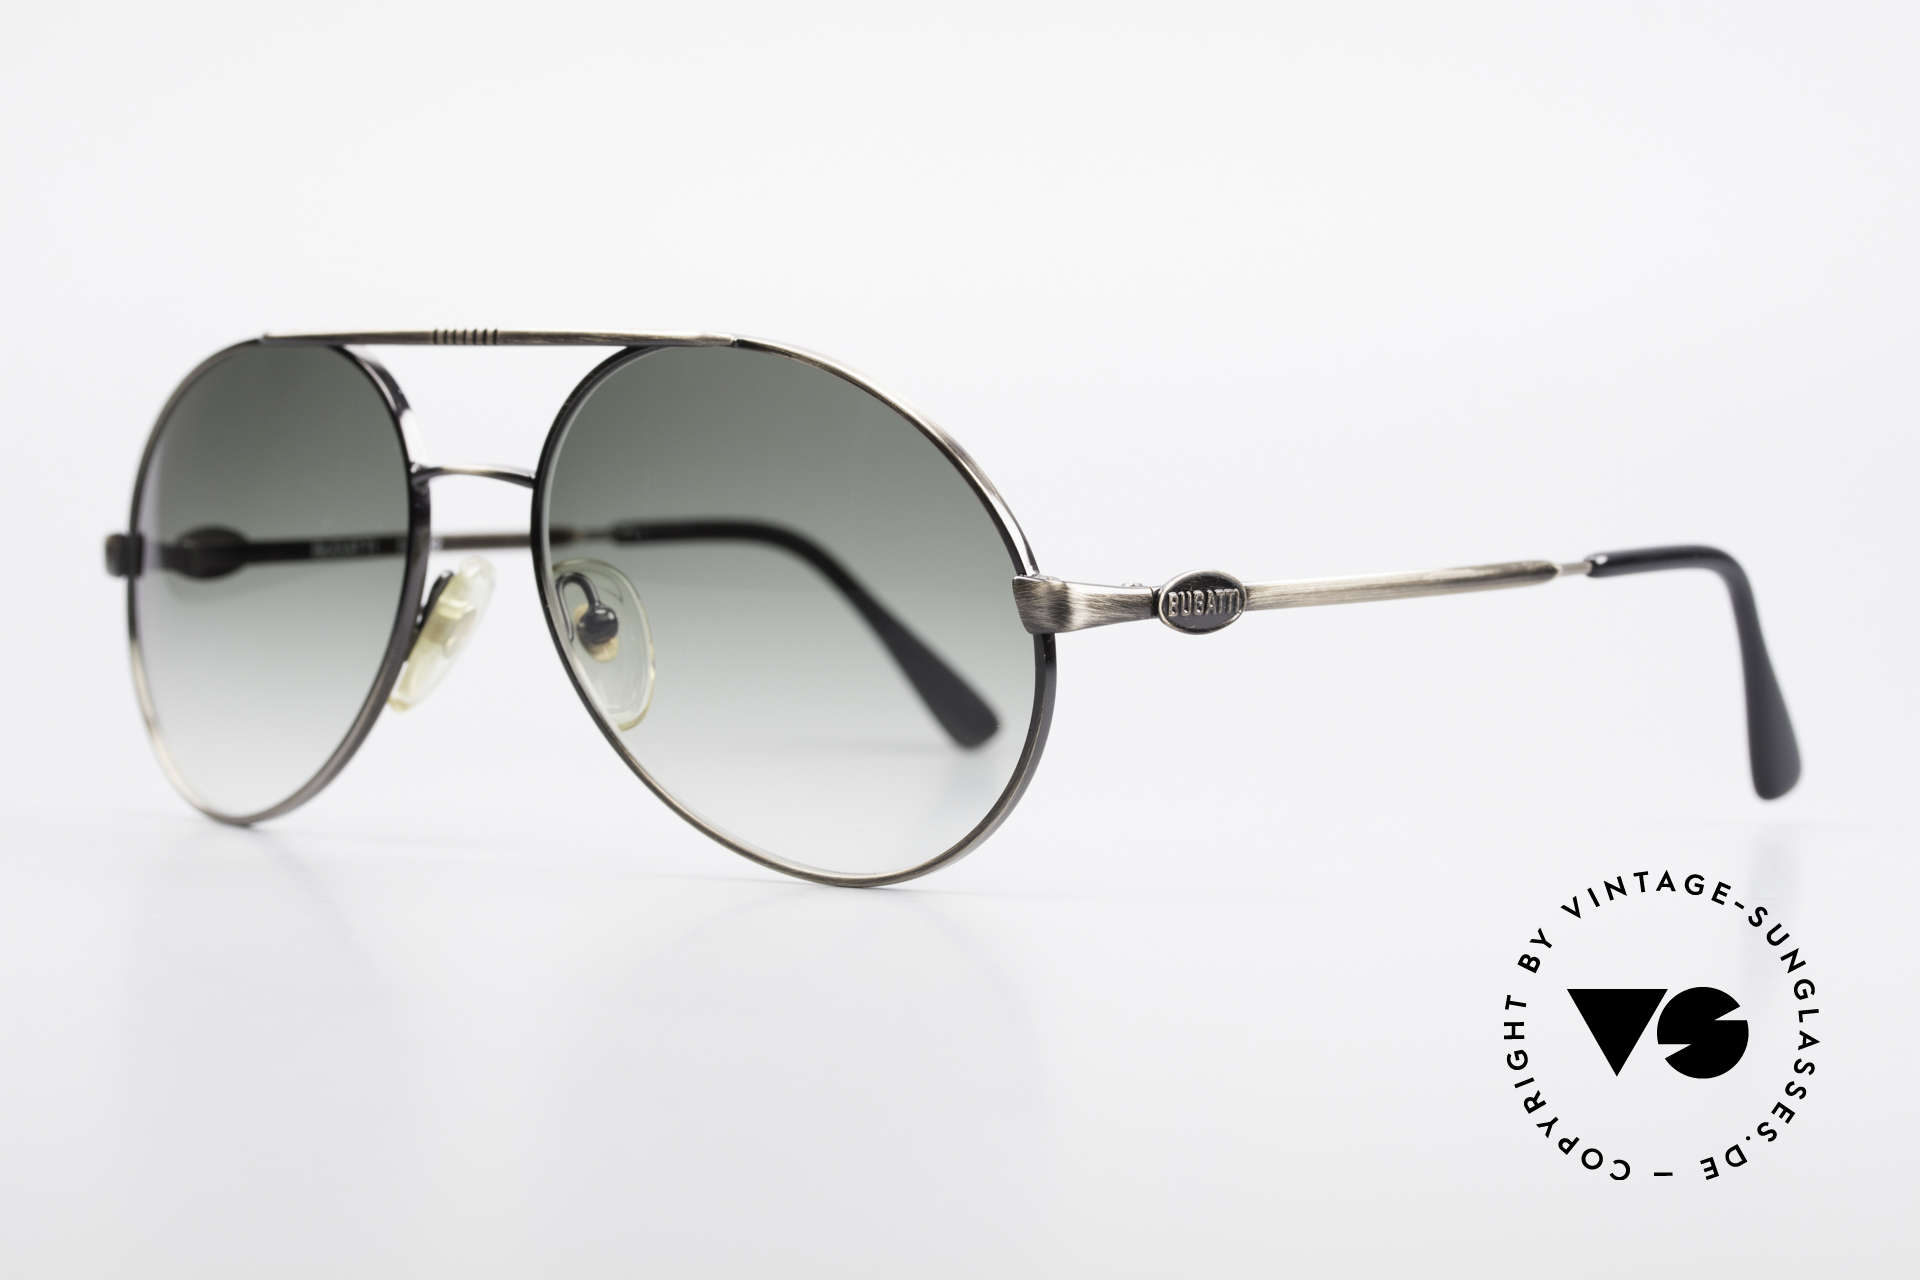 Bugatti 65282 Original 80's Shades No Retro, very noble lenses (green-gradient), 100% UV protect., Made for Men